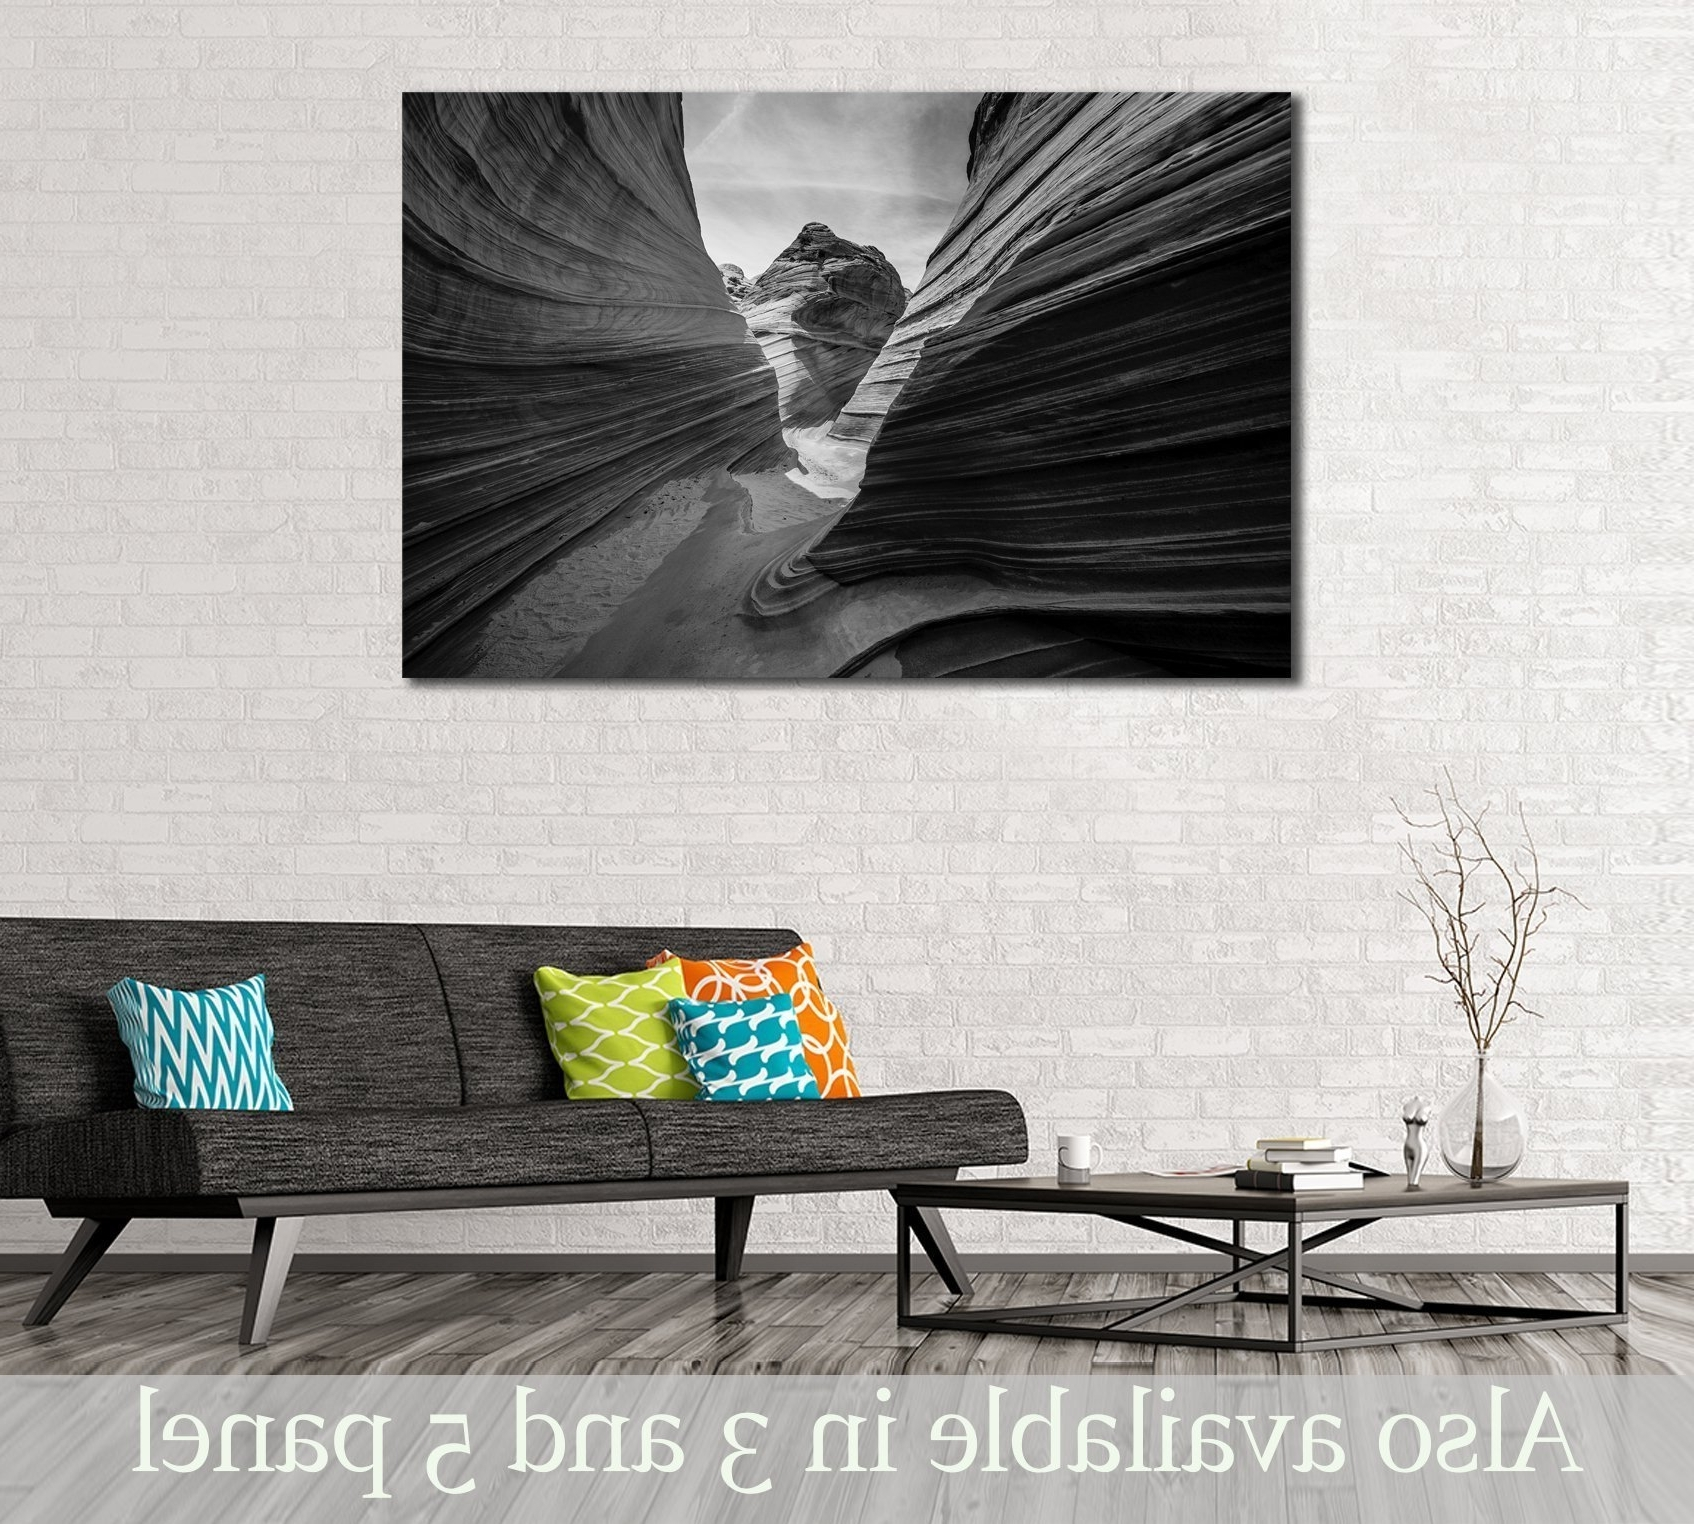 Most Current Incredible Mountains Wall Art At Zellart Canvas Of Arizona Popular With Arizona Wall Art (View 10 of 15)